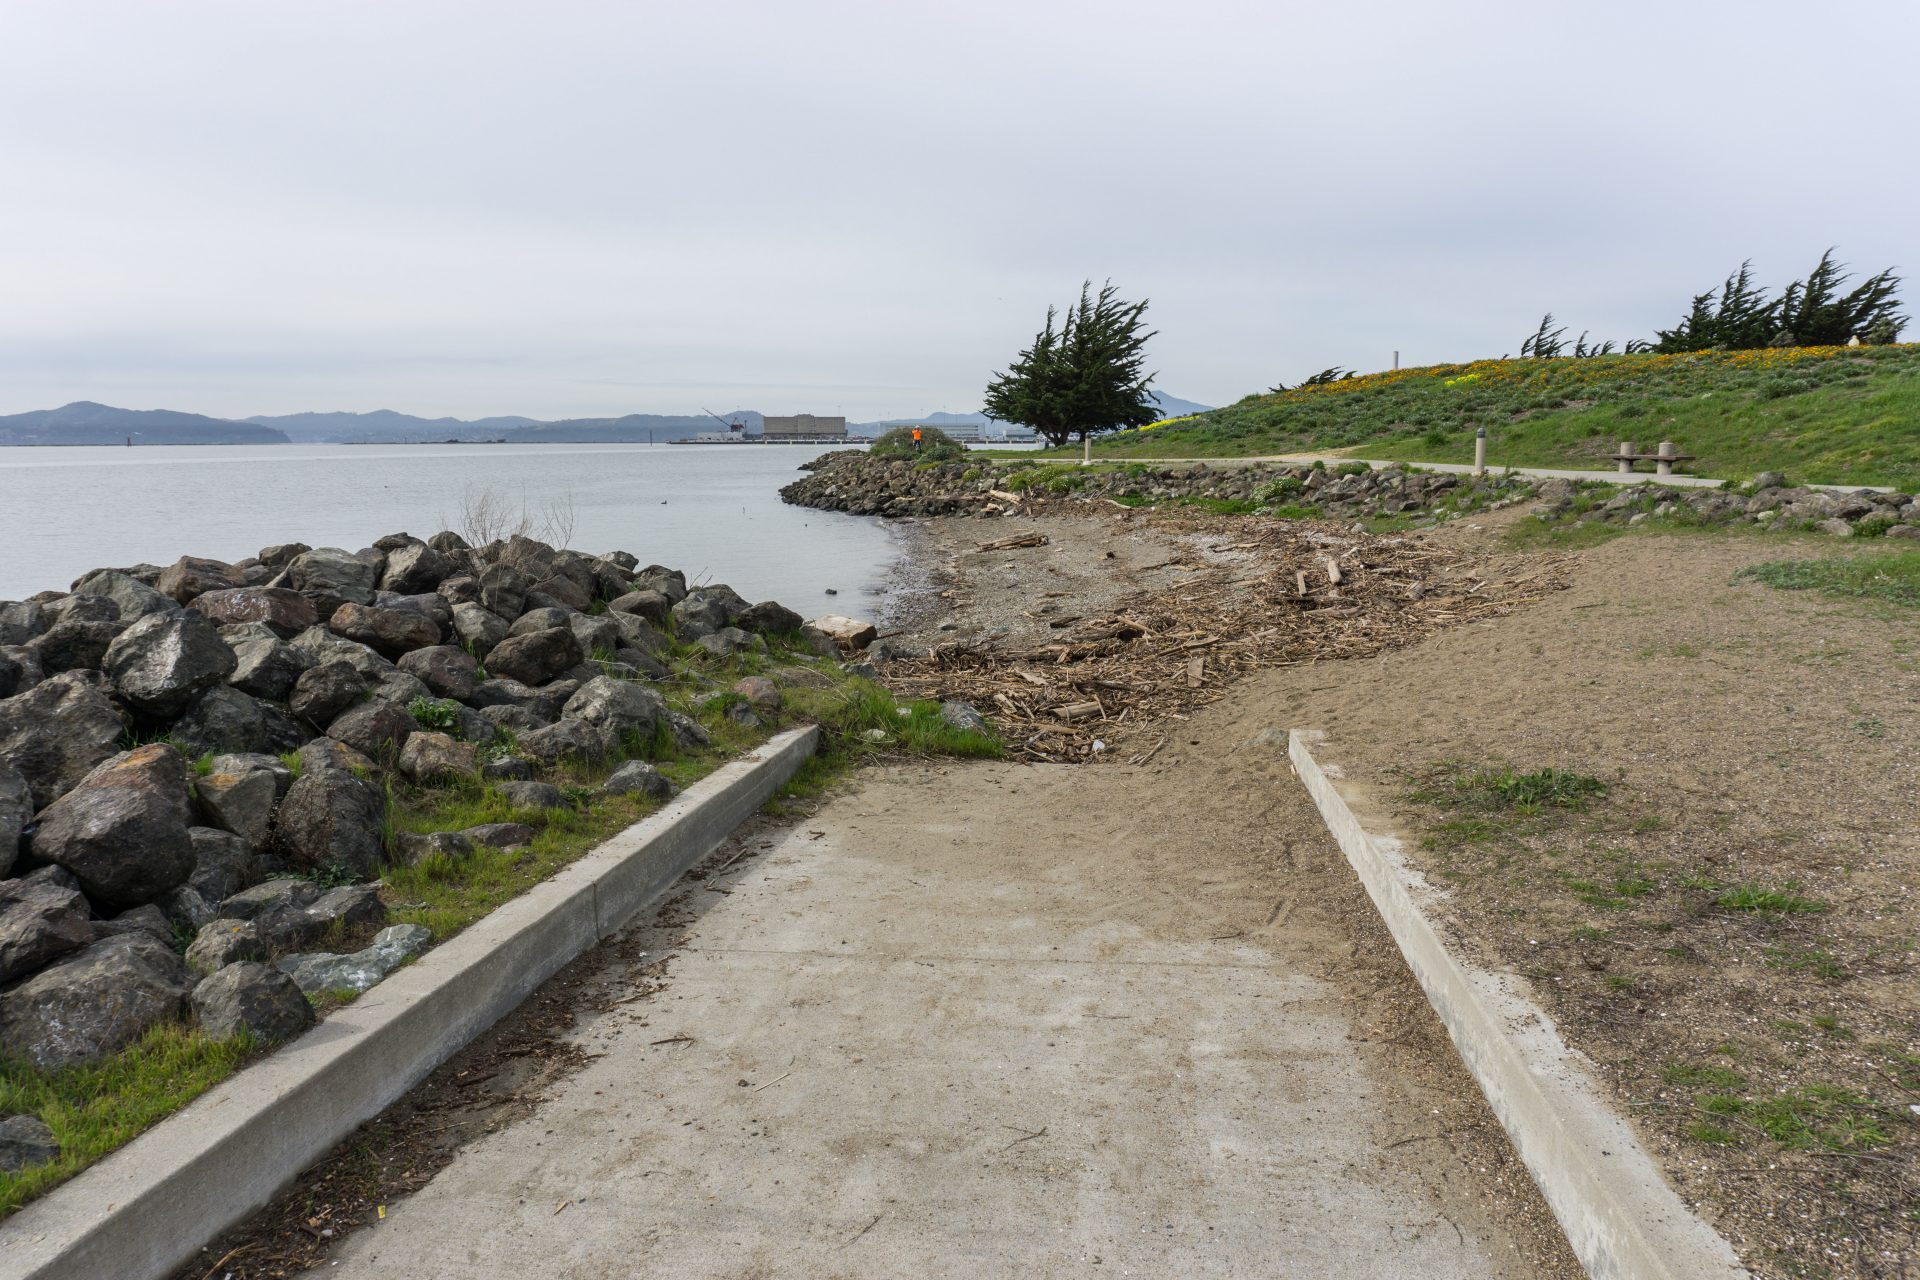 Paved path ends at abrupt drop to sandy beach